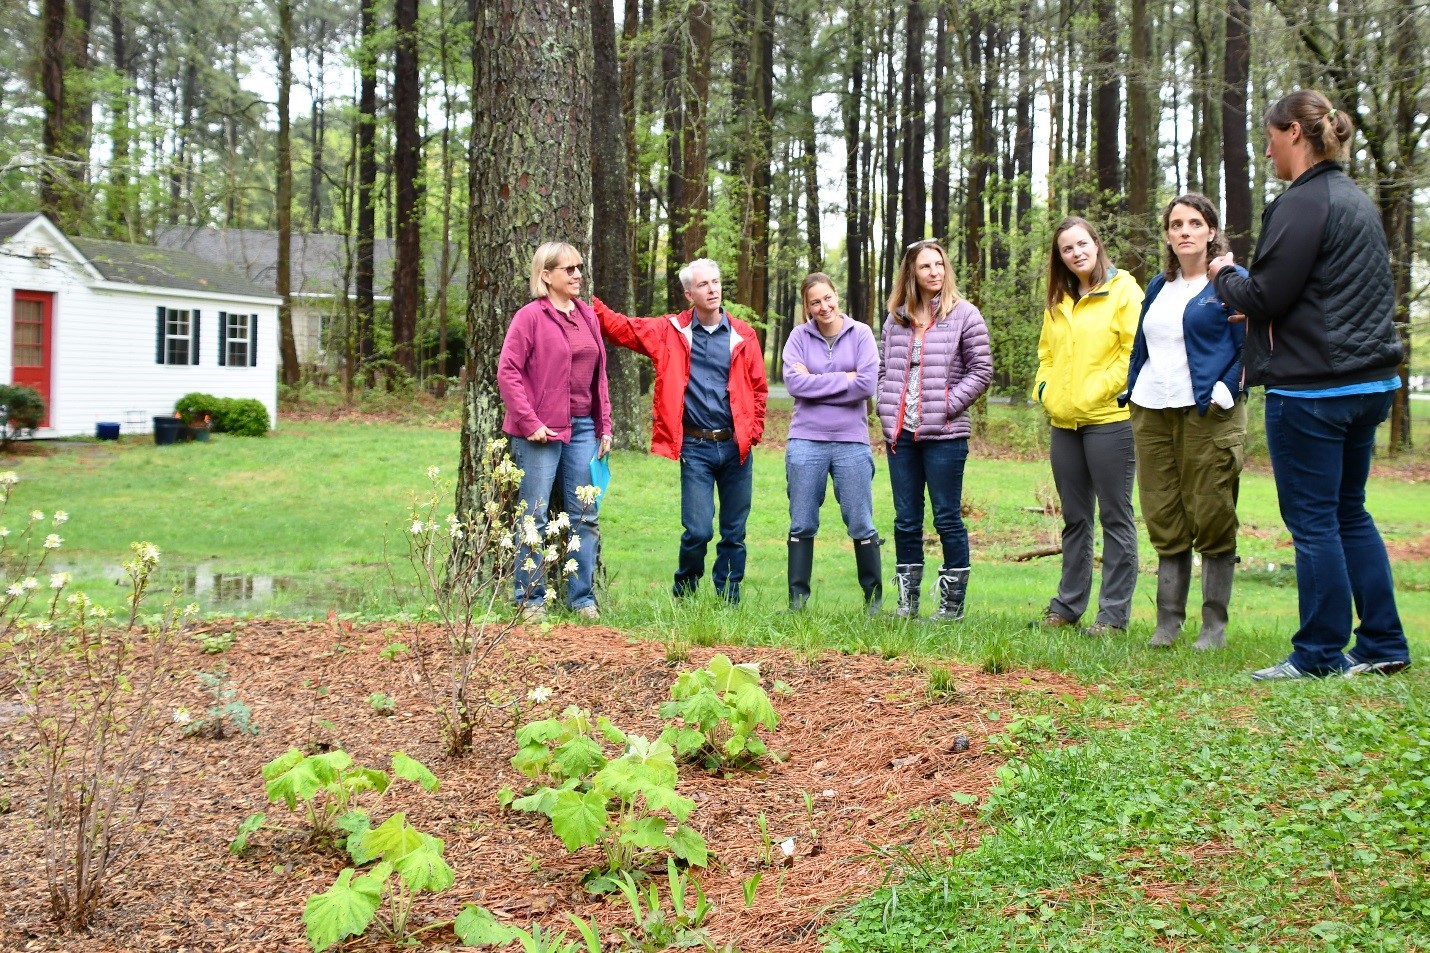 Landowner Assistance Coordinator Nicole Barth (far right) explains some of the features of Janet's (far left) rain garden to visitors. Plants were beginning to emerge on the early spring day.